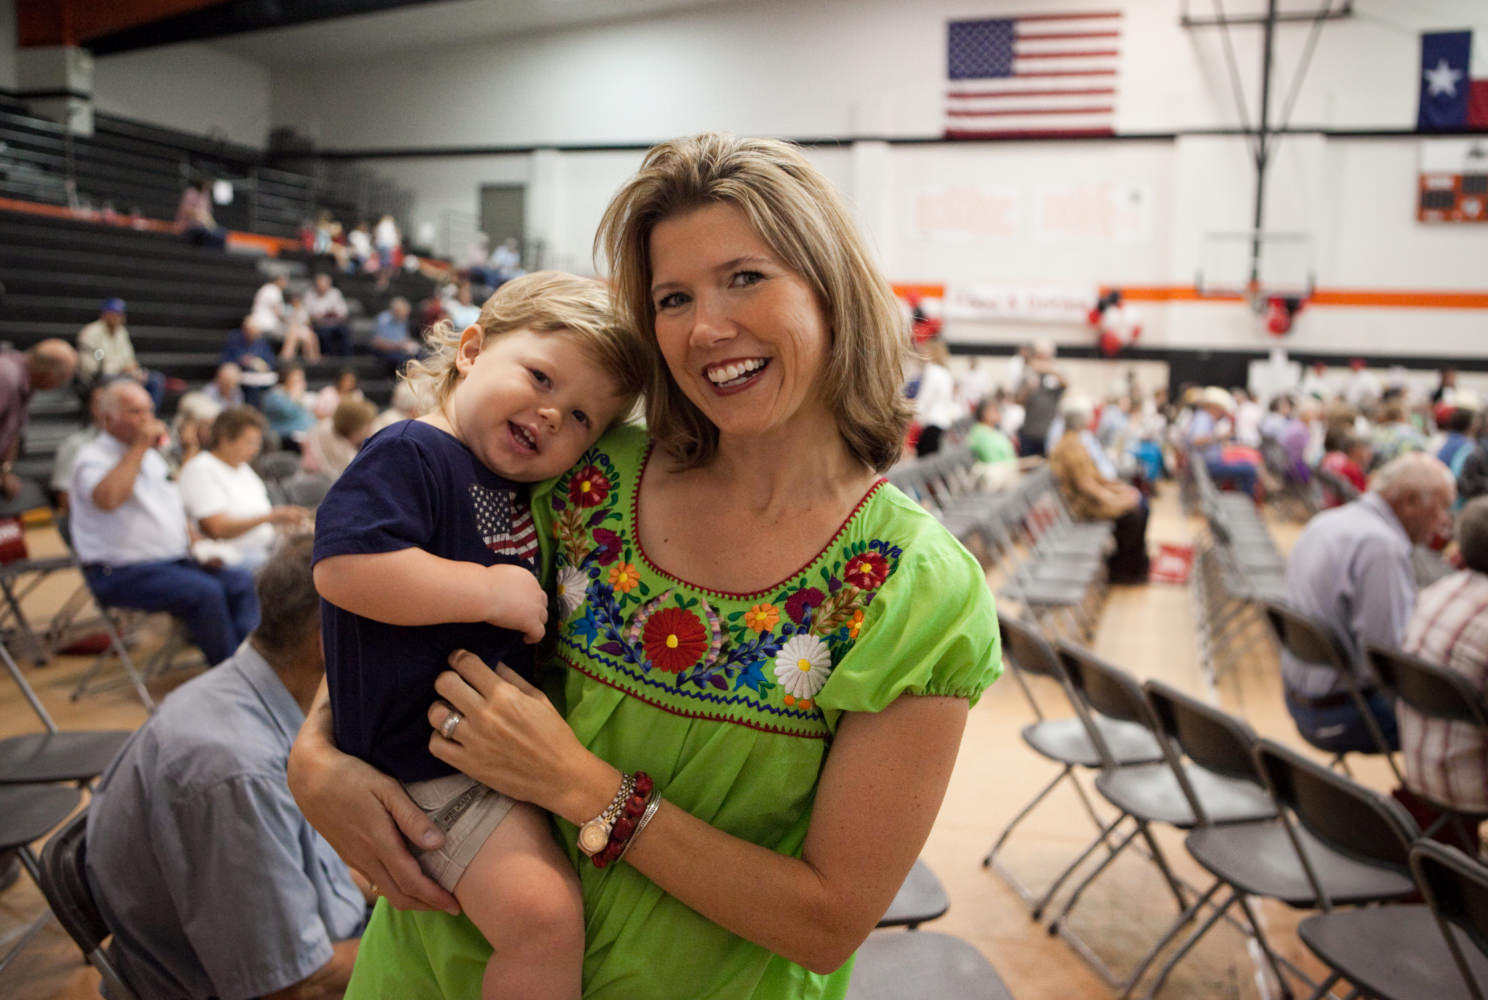 Lady with Child at Annual Meeting